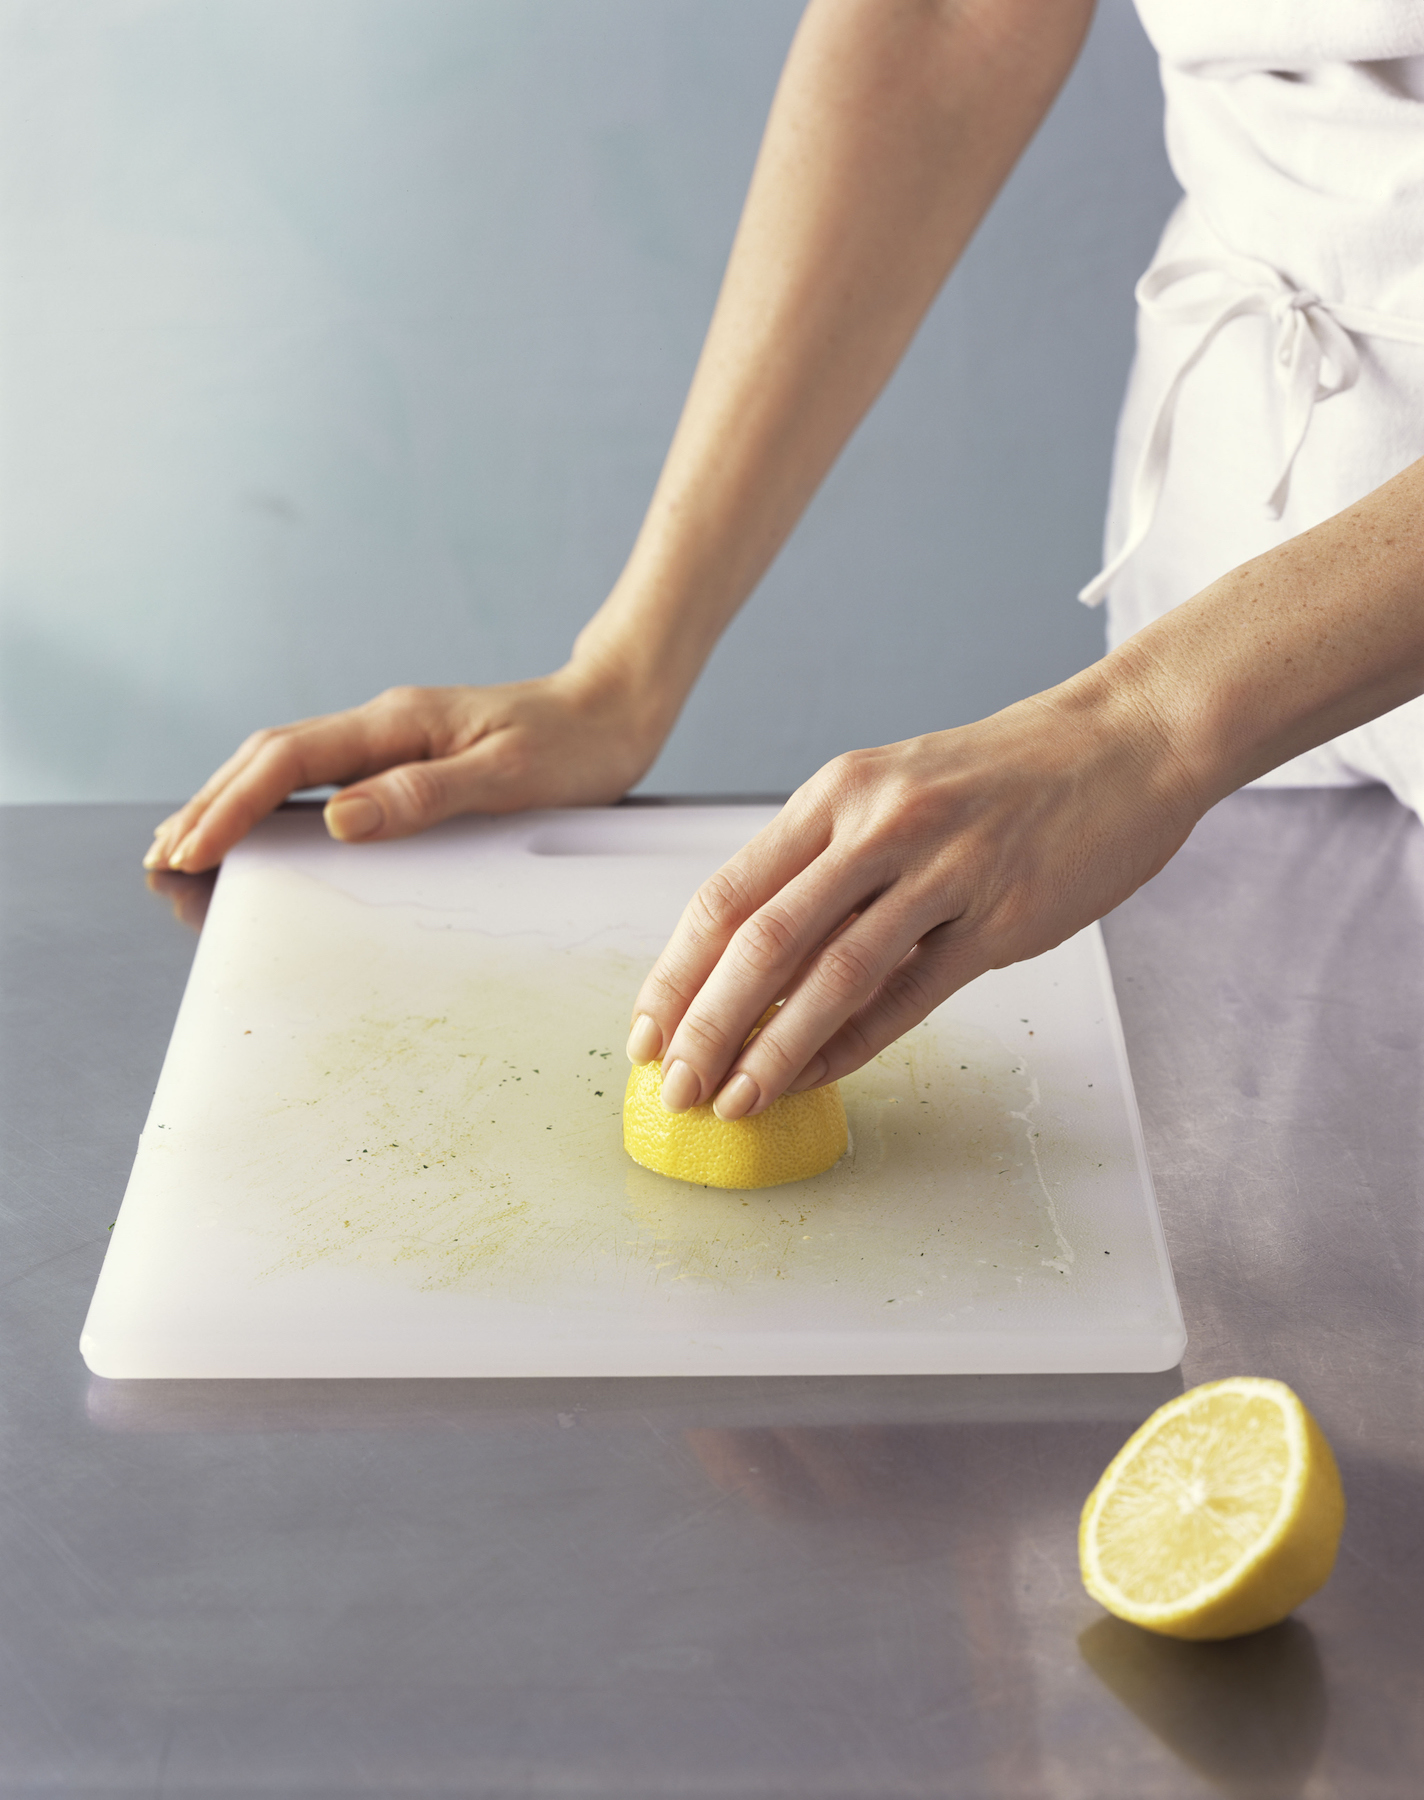 Woman Cleaning Cutting Board with Lemon